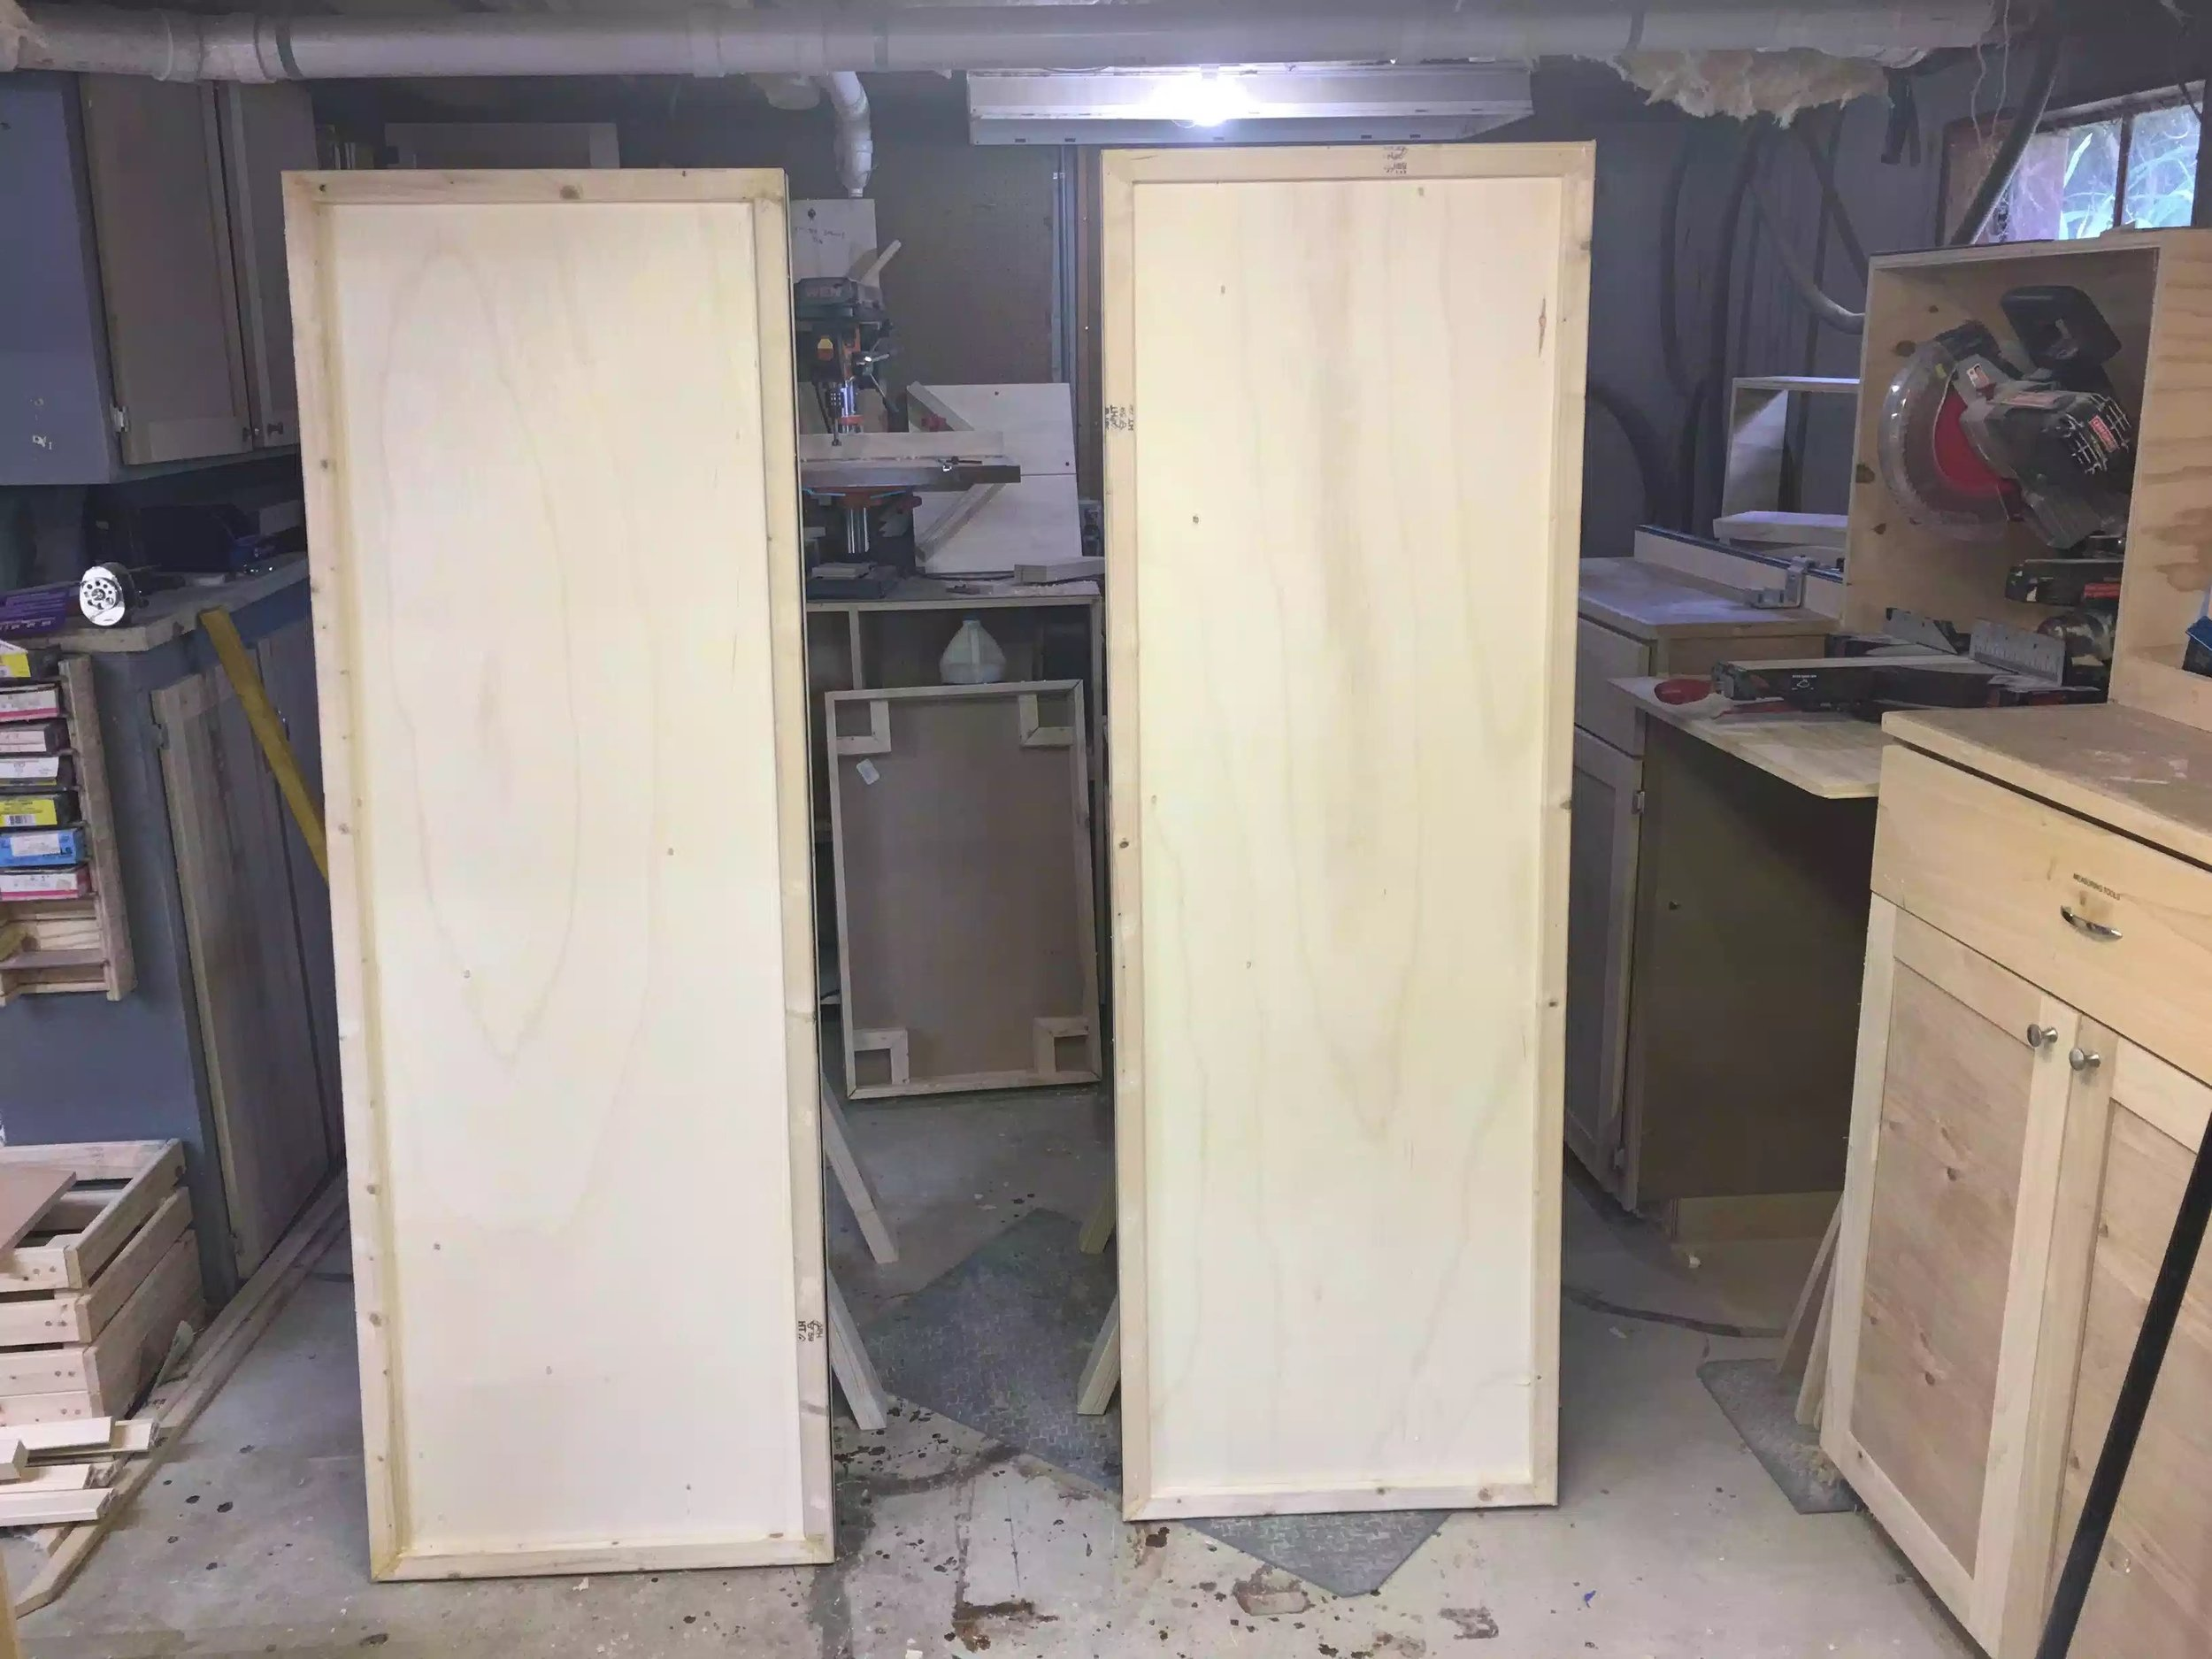 This is the back side og the panels, I will be adding chalkboard paint and corkboard, later in the project